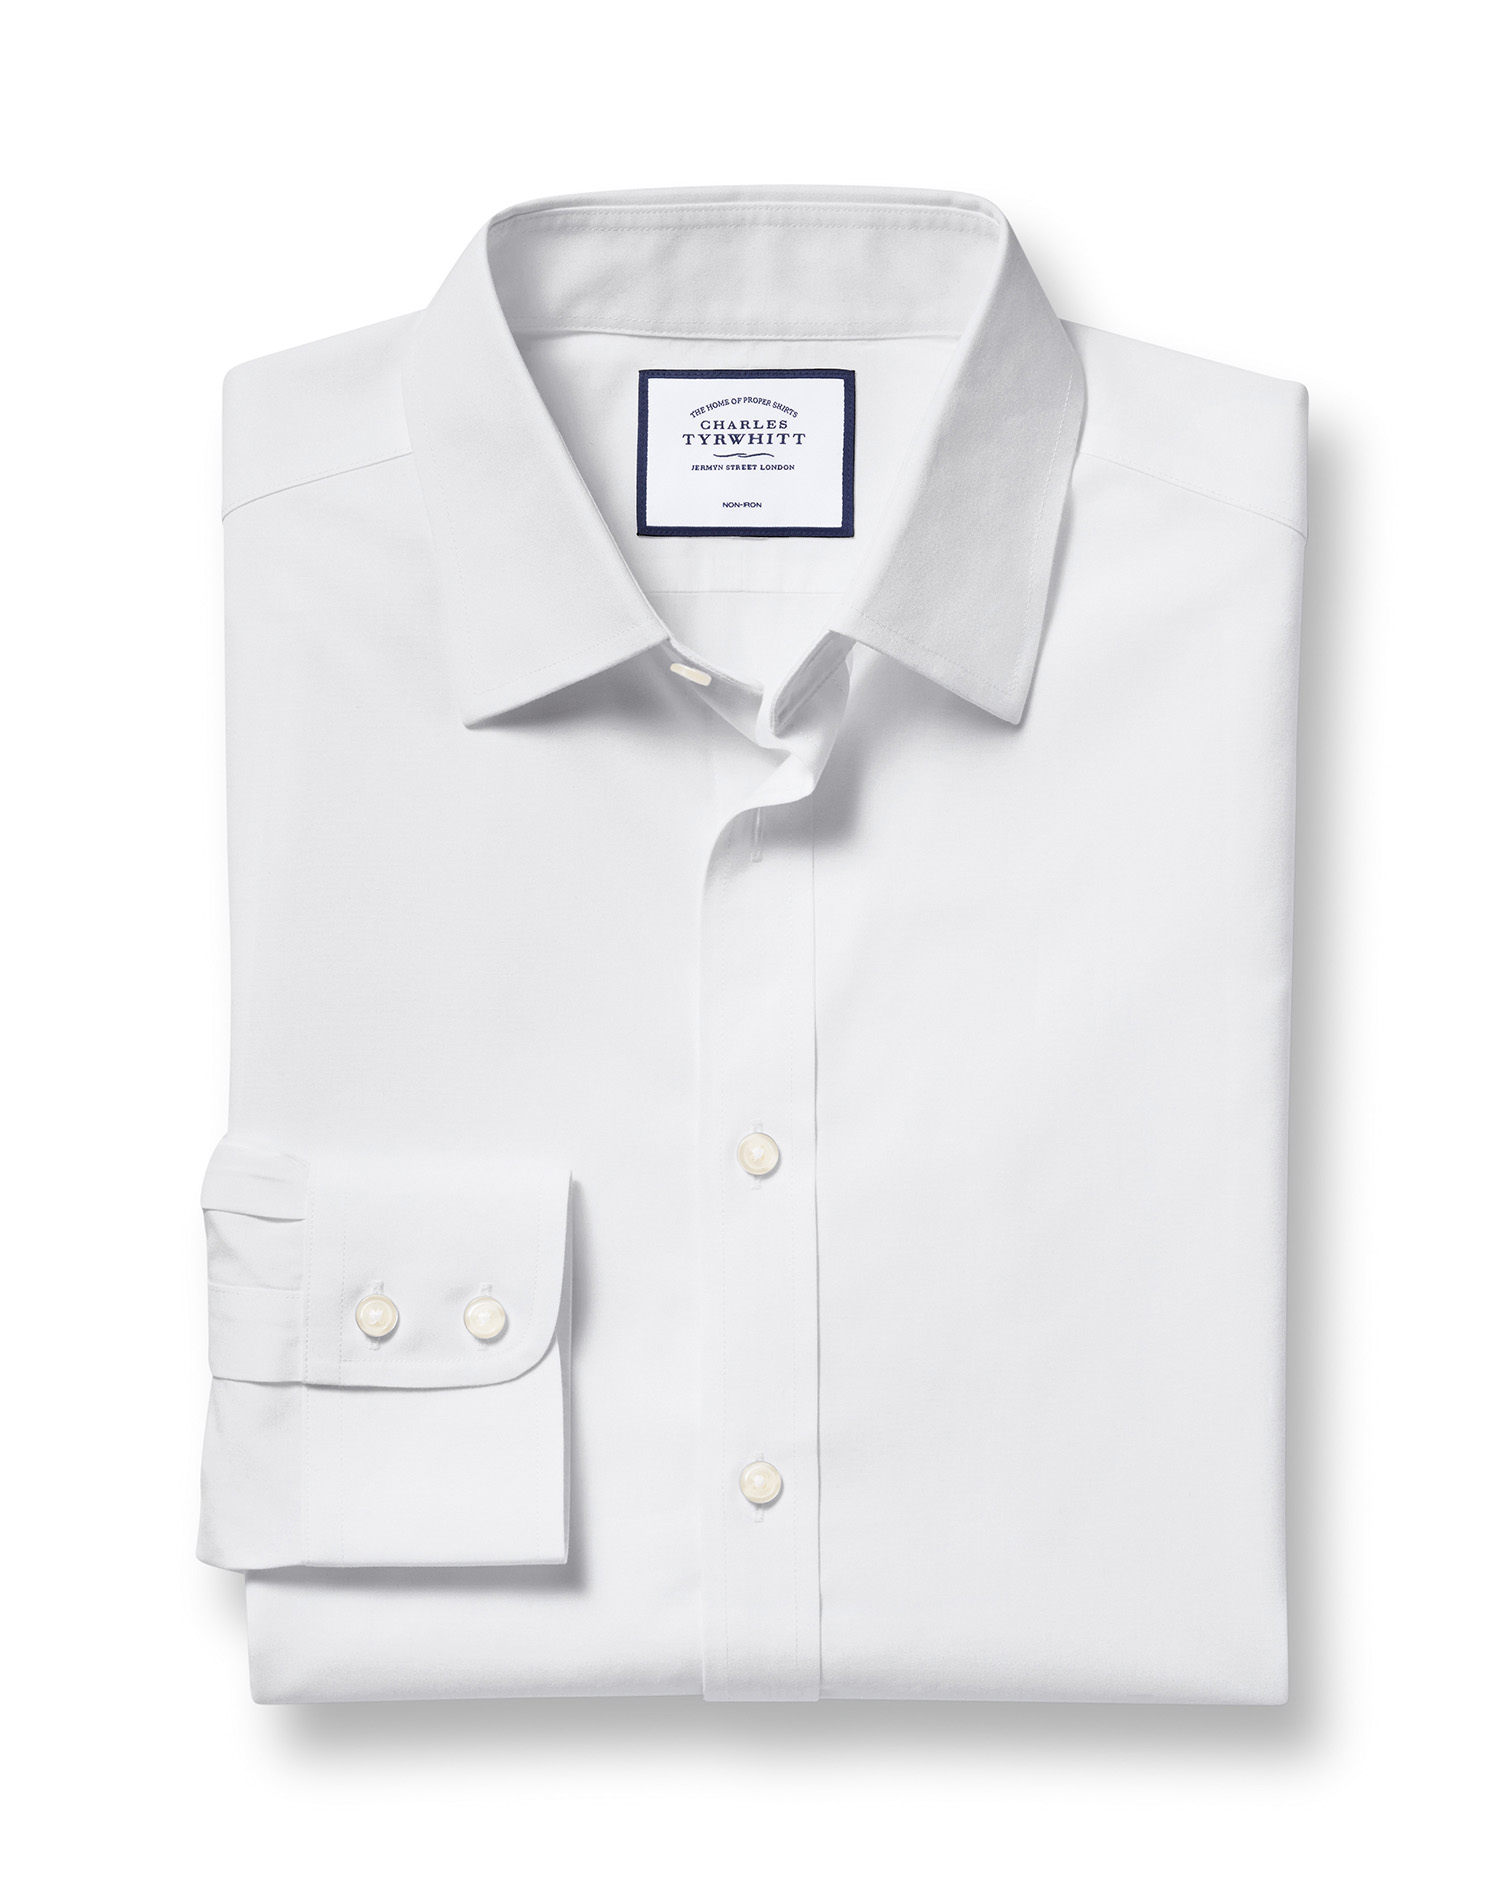 Extra Slim Fit Non-Iron Poplin White Cotton Formal Shirt Single Cuff Size 15/33 by Charles Tyrwhitt